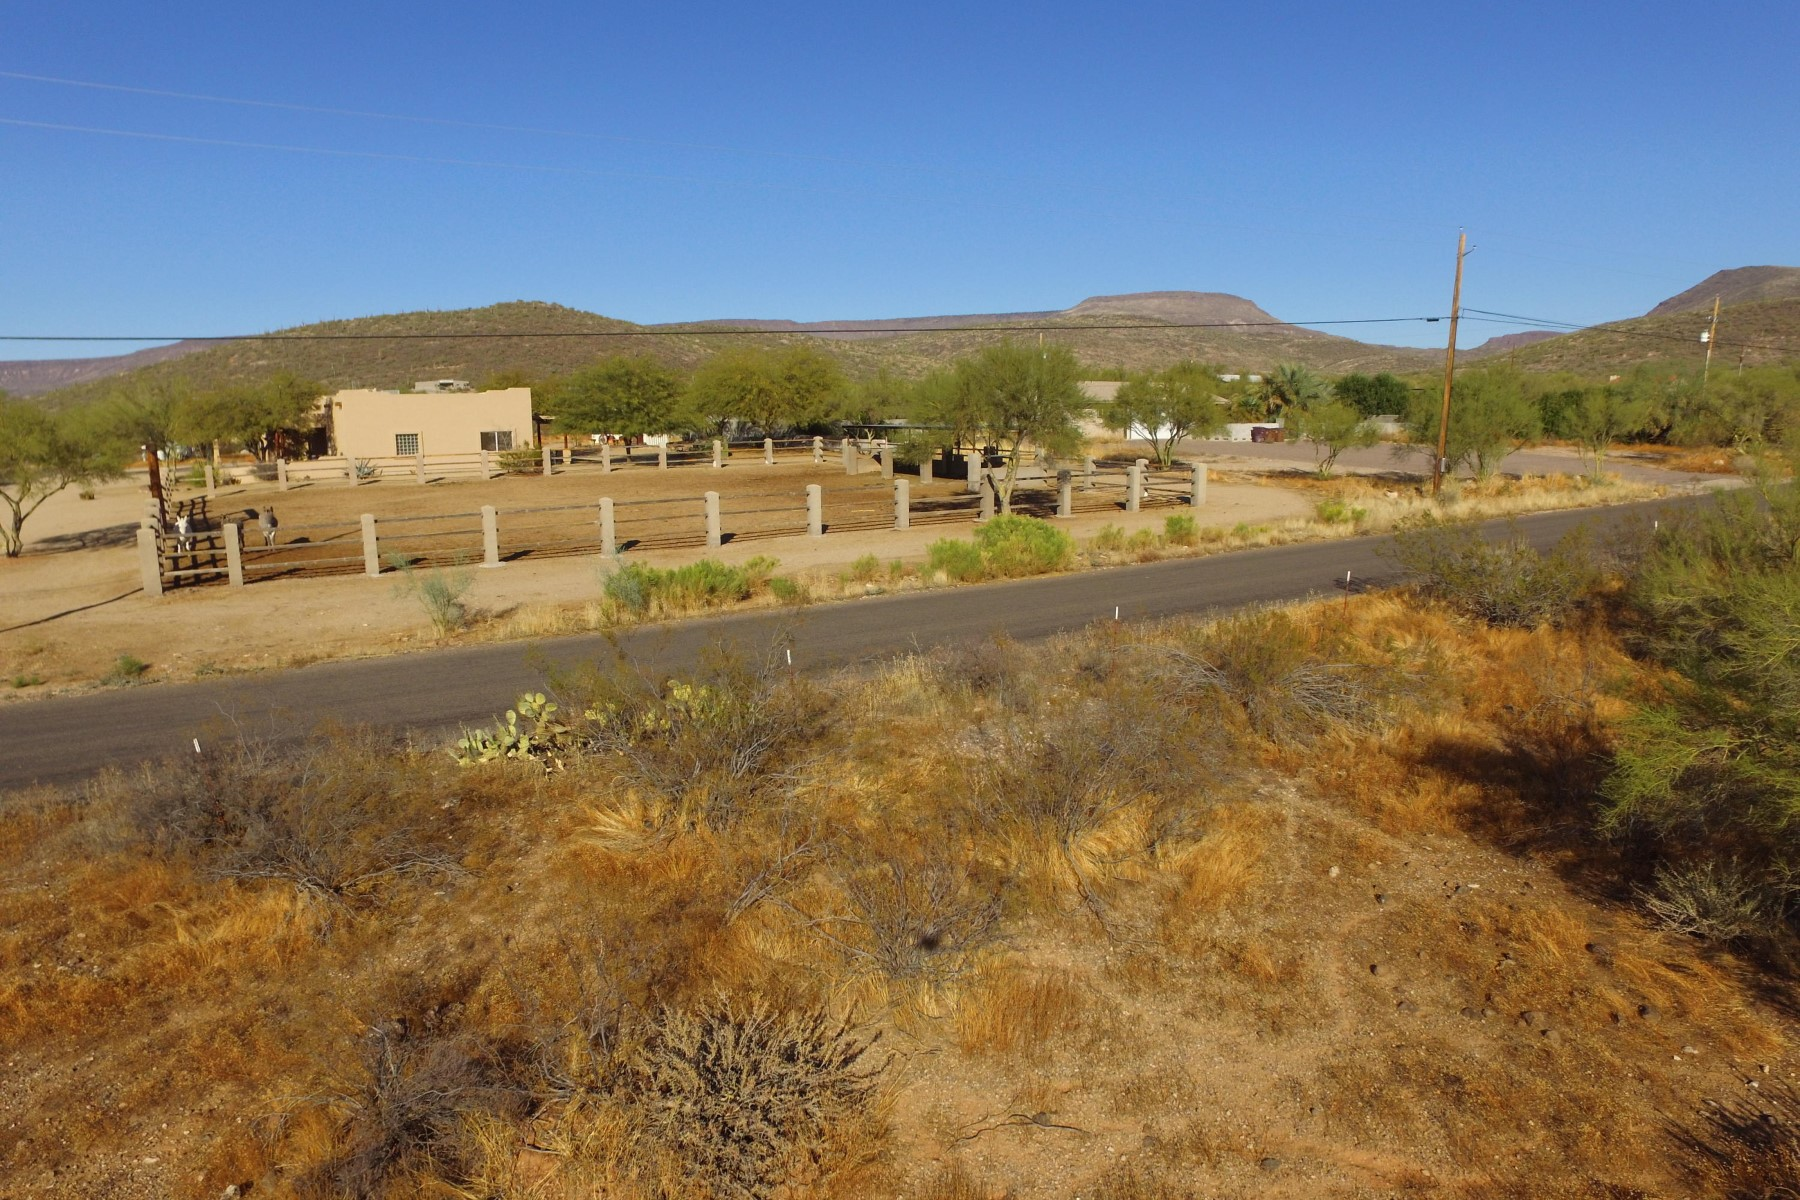 Additional photo for property listing at Lovely New River lot 43215 N 22nd St New River, Arizona 85087 United States